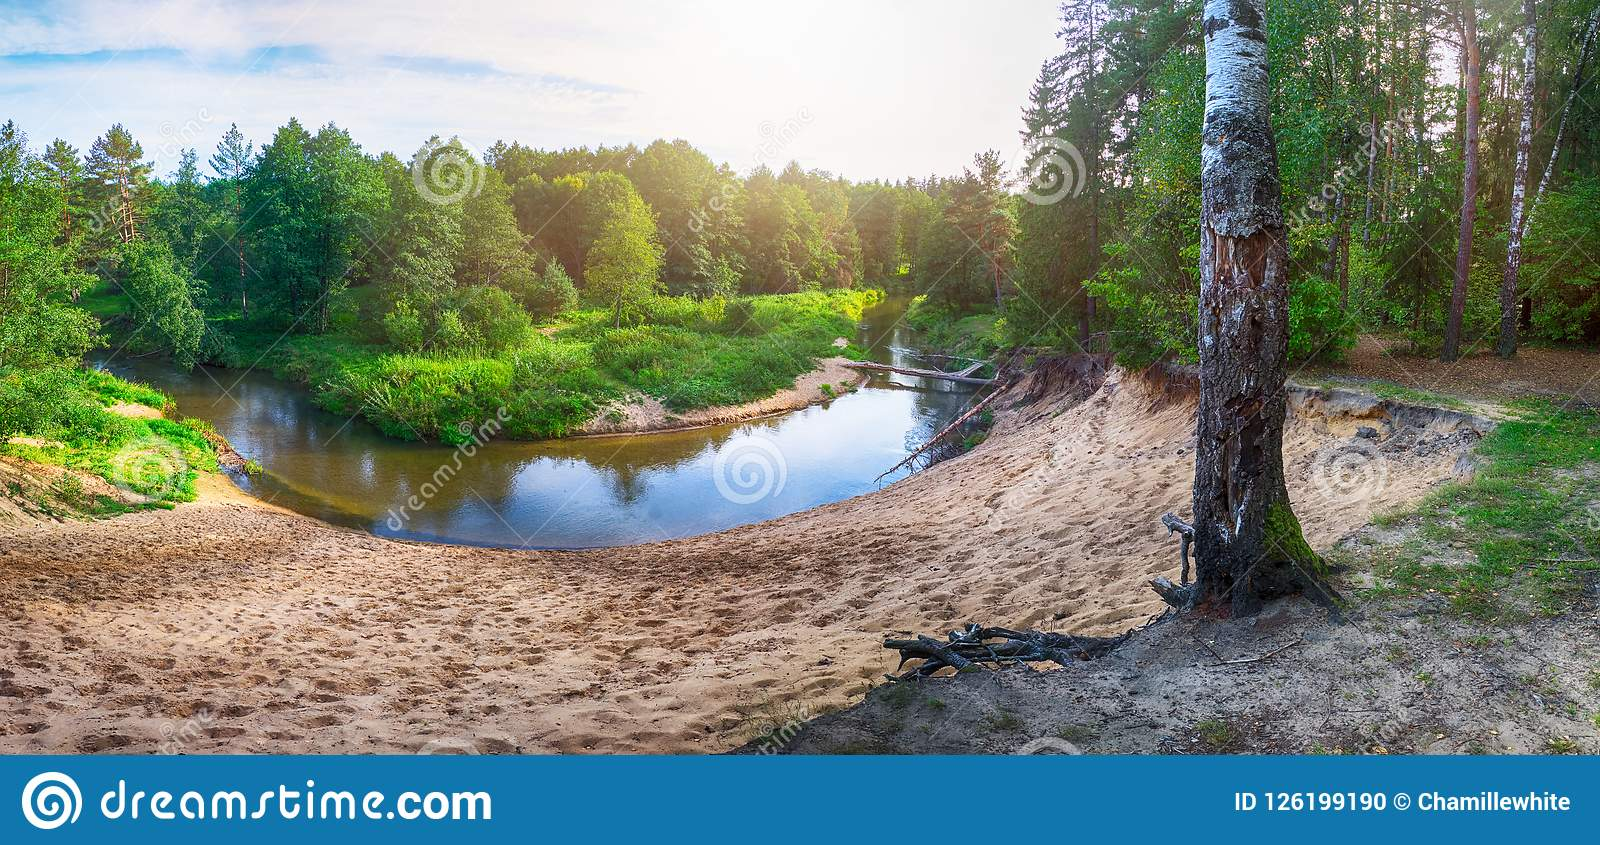 Beautiful Landscape Of Forest River With Reflections Of